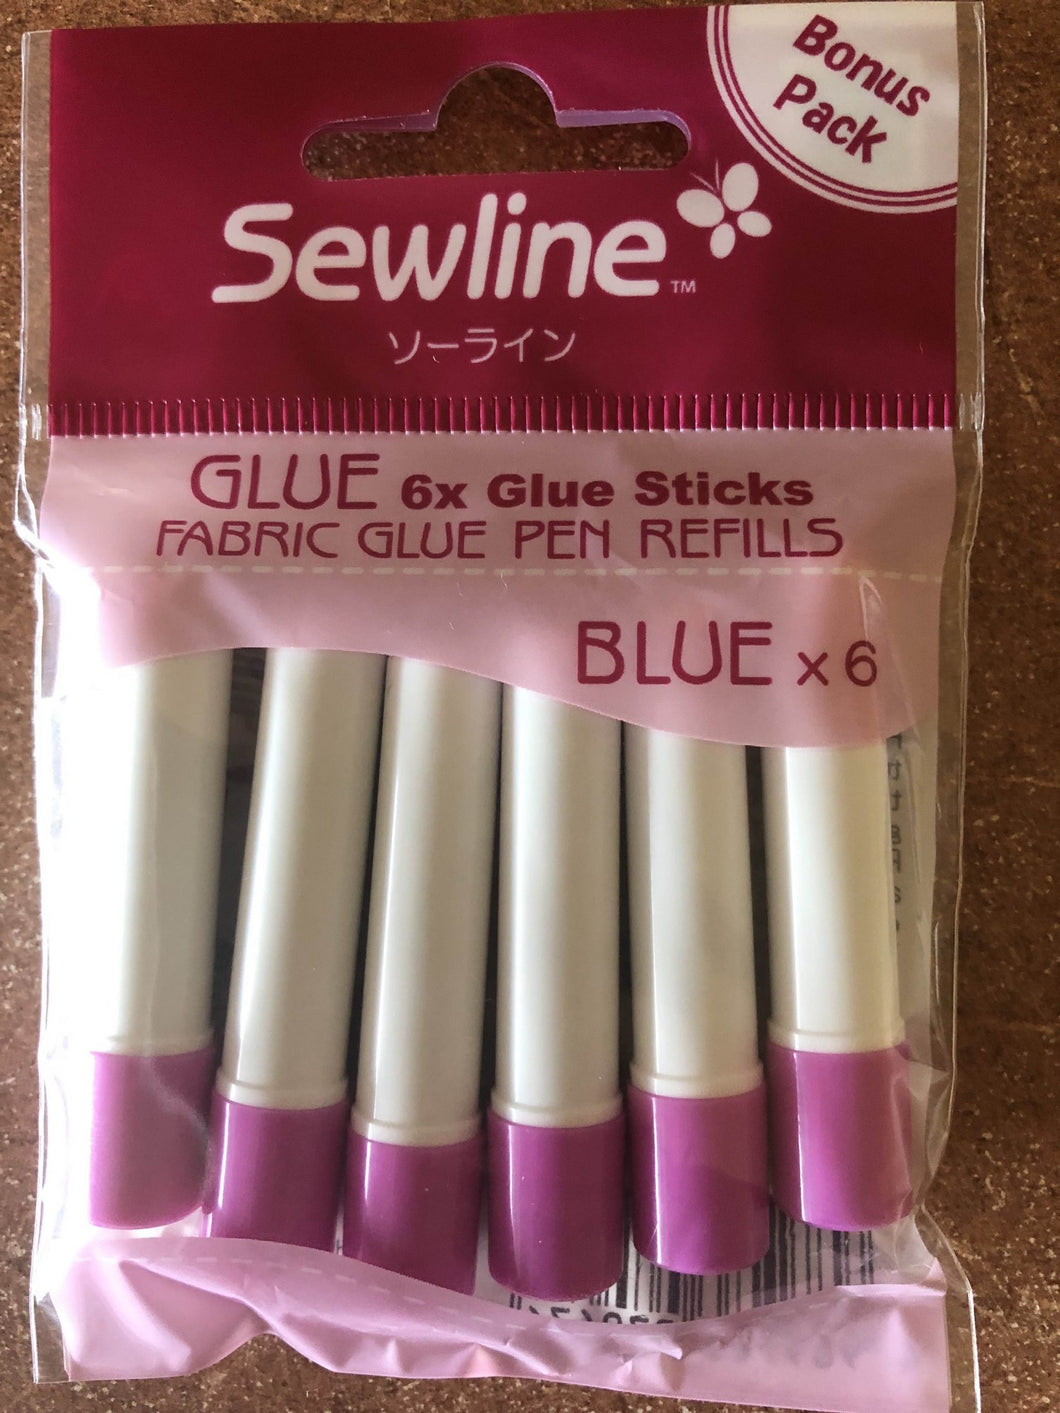 Fabric Glue Pen Refills - Blue - Pack of 6